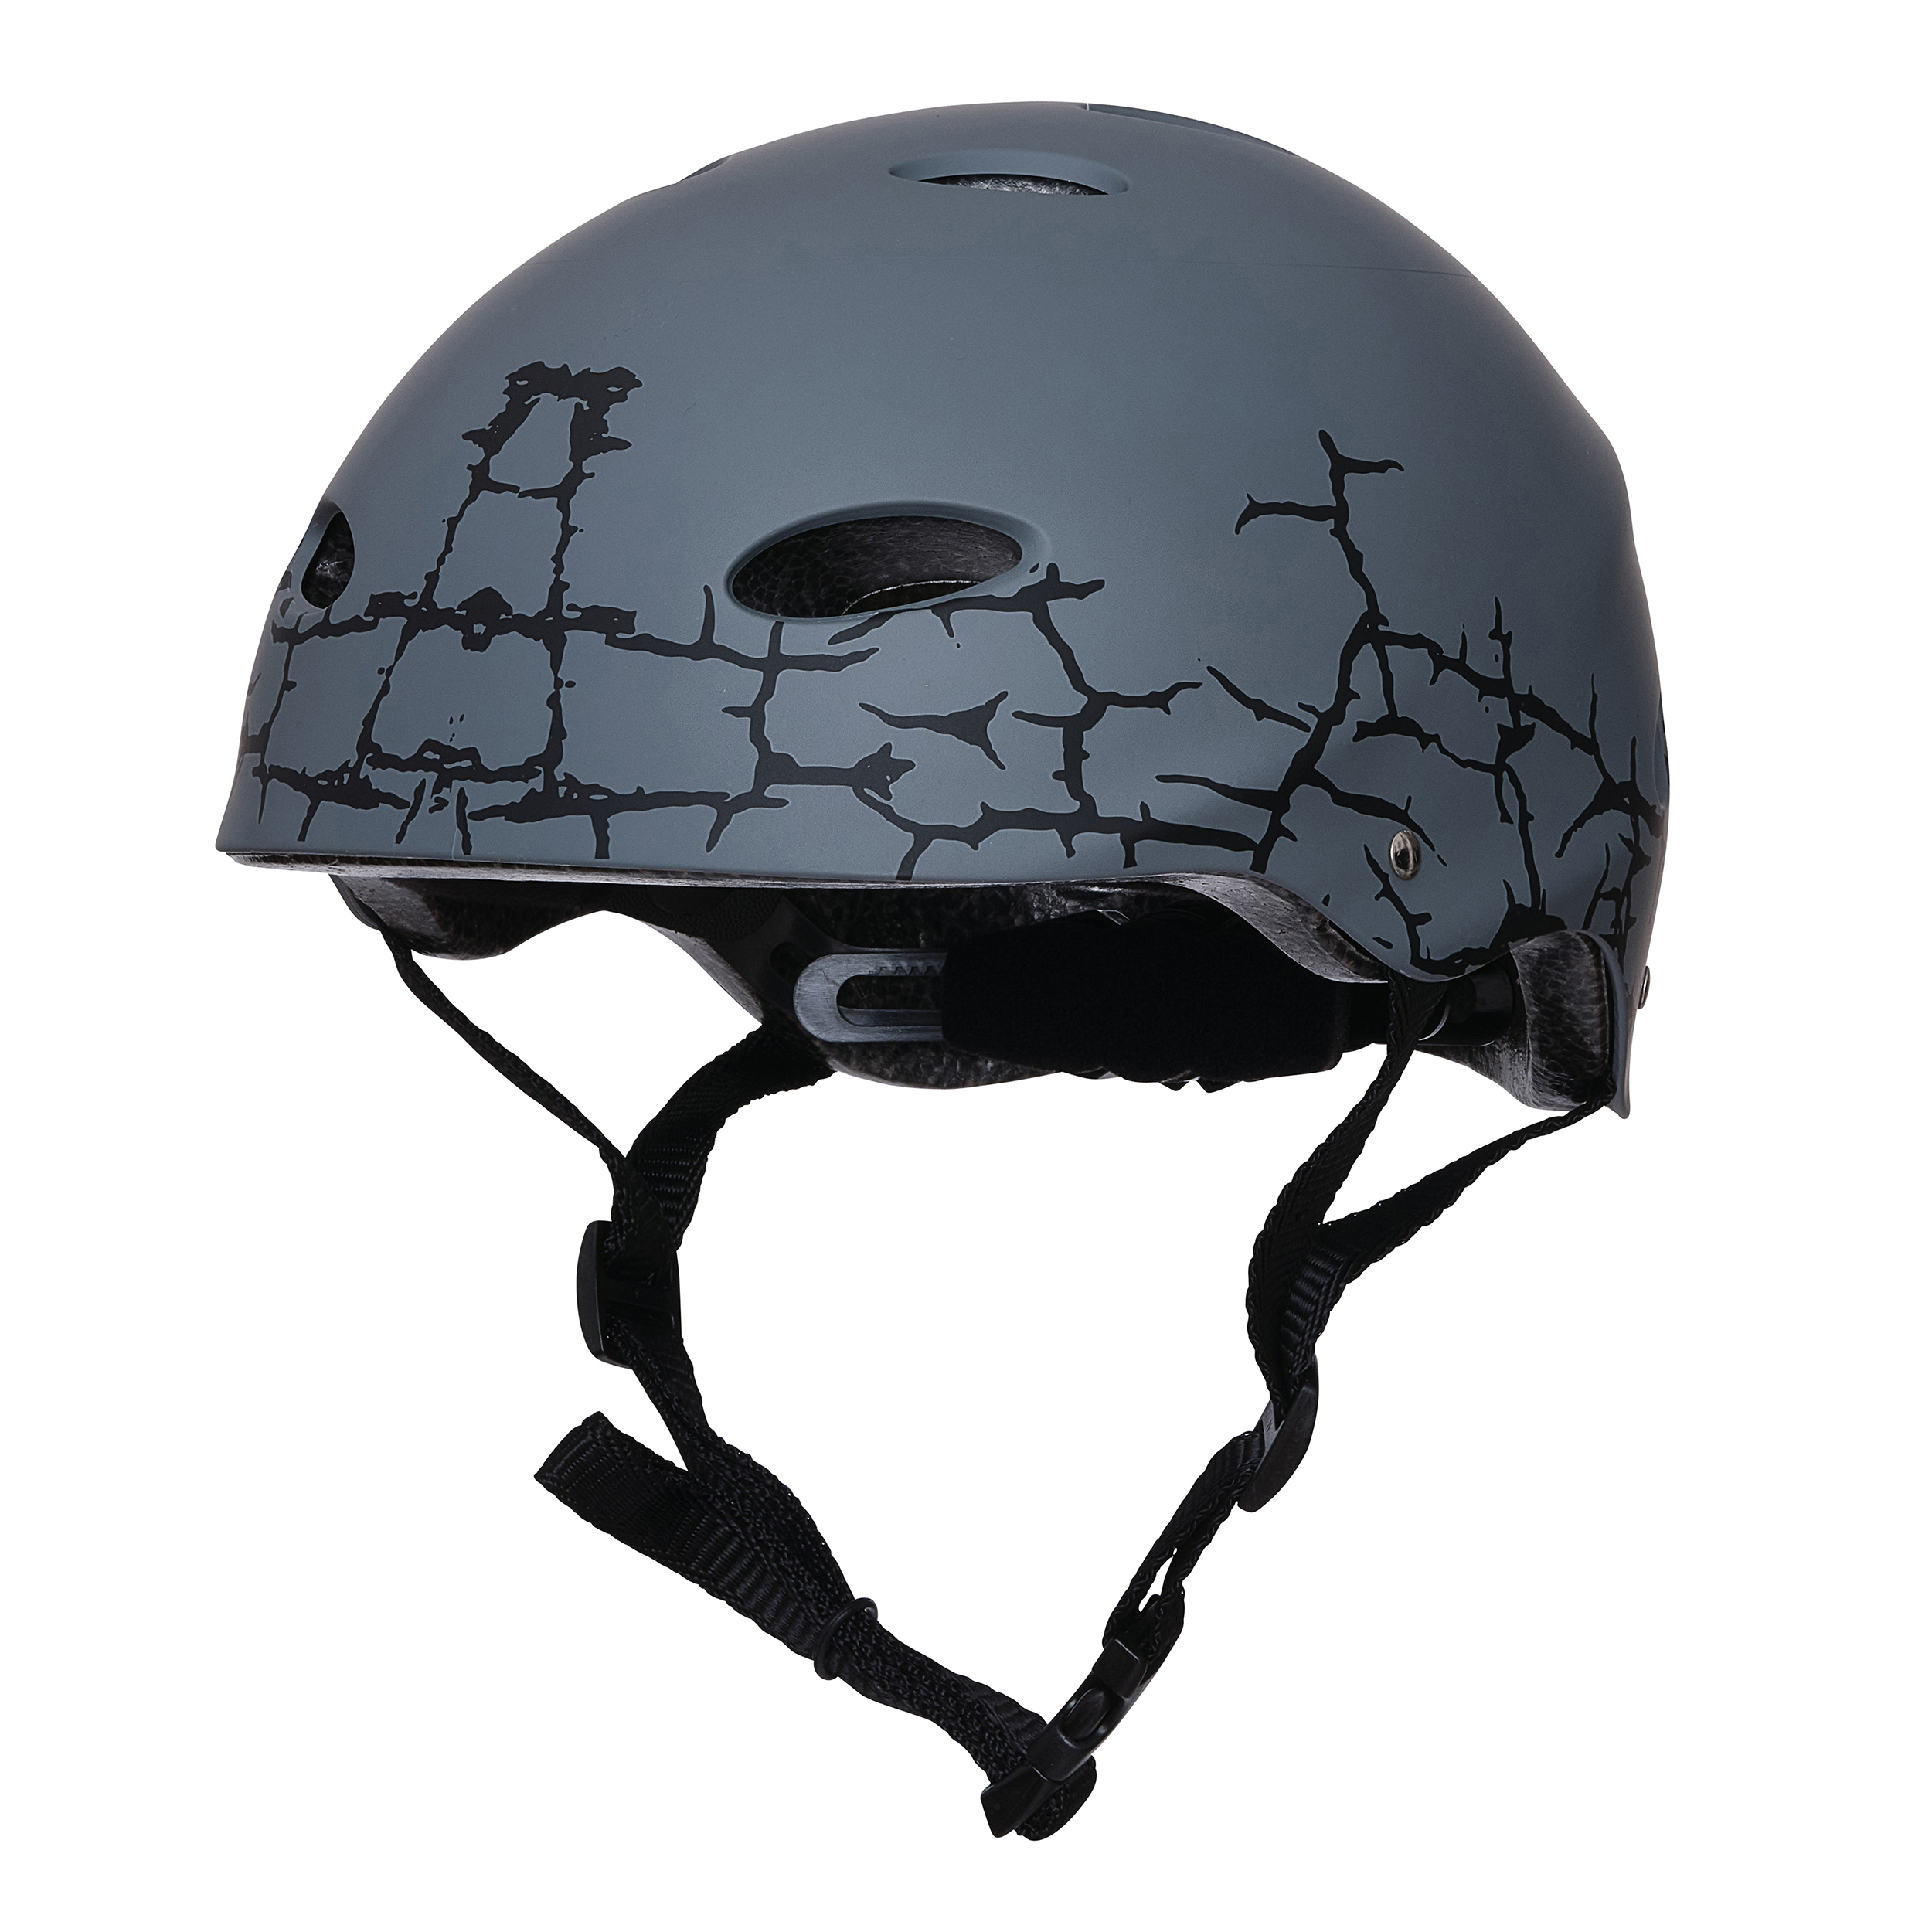 "Apollo Skate-Helm - ""Cracked"" Größe L/XL verstellbar (56-61 cm)"